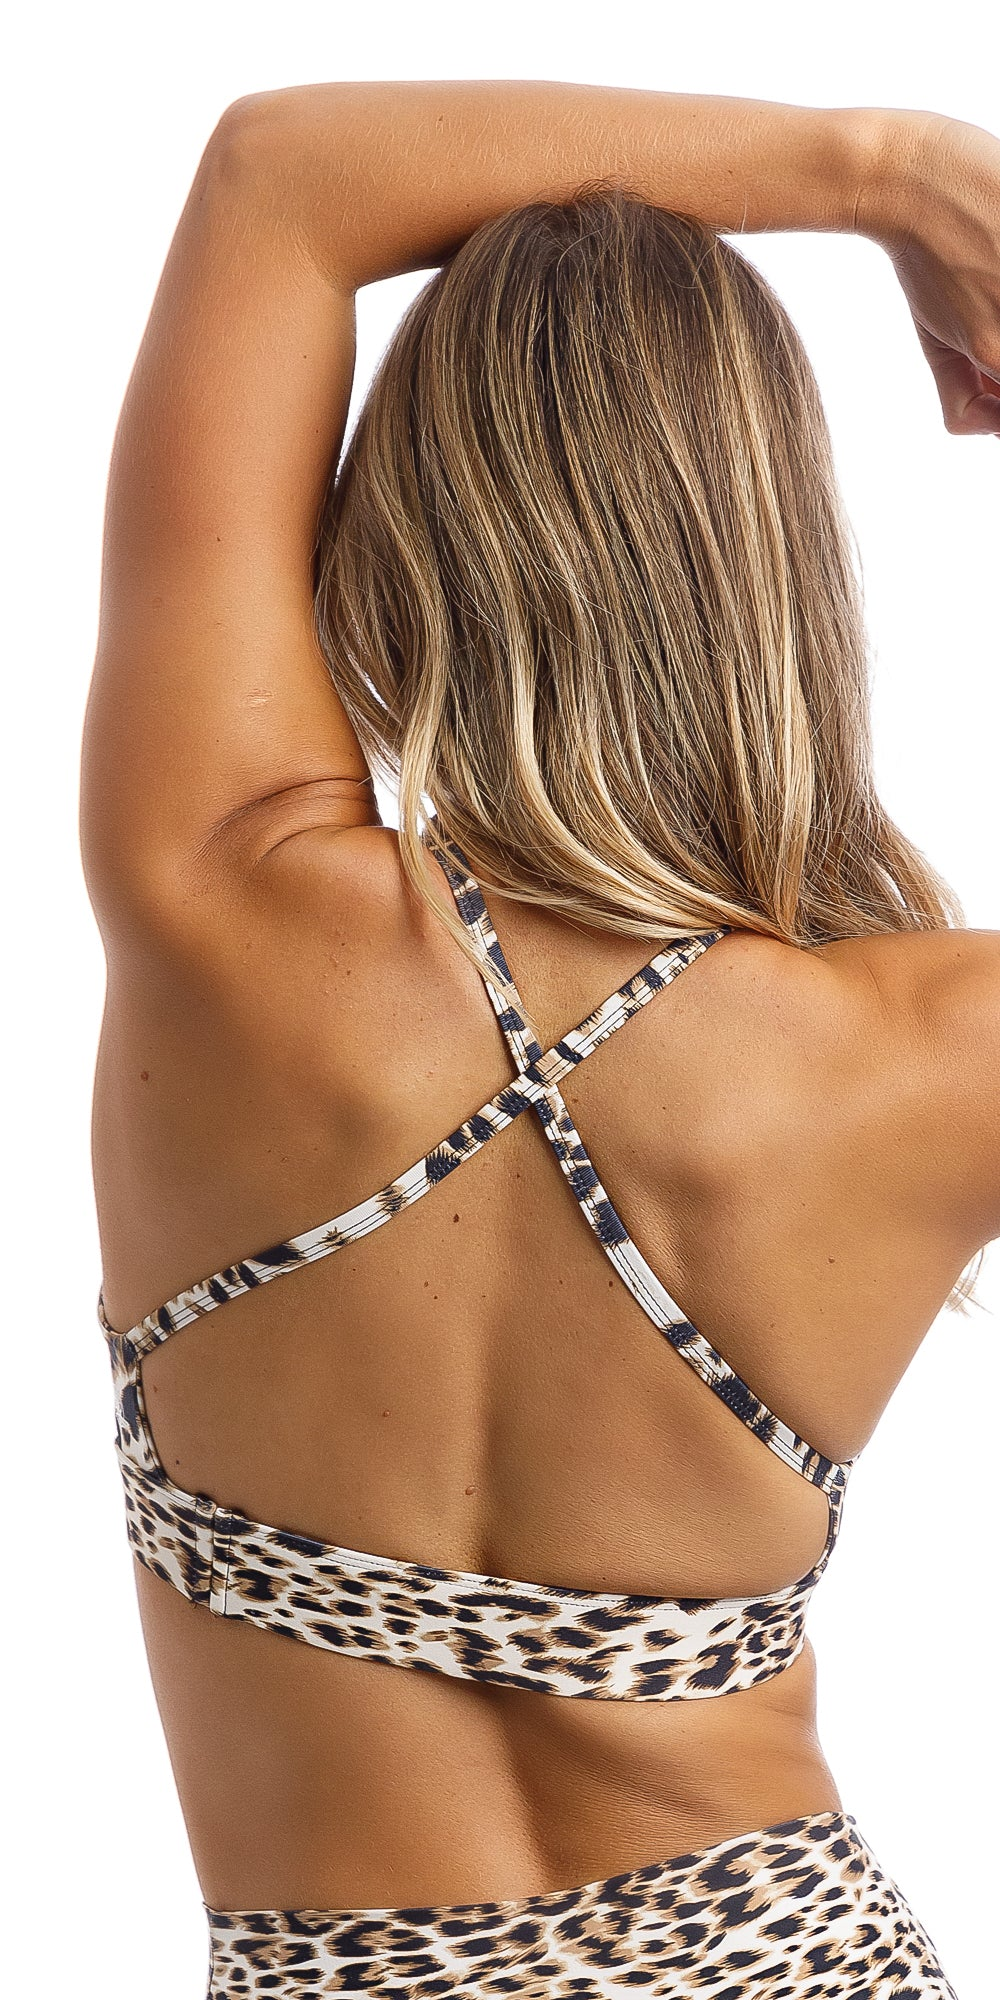 Rear view of girl wearing brown & white cheetah print infinity bra with cross-over back straps & matching capri leggings